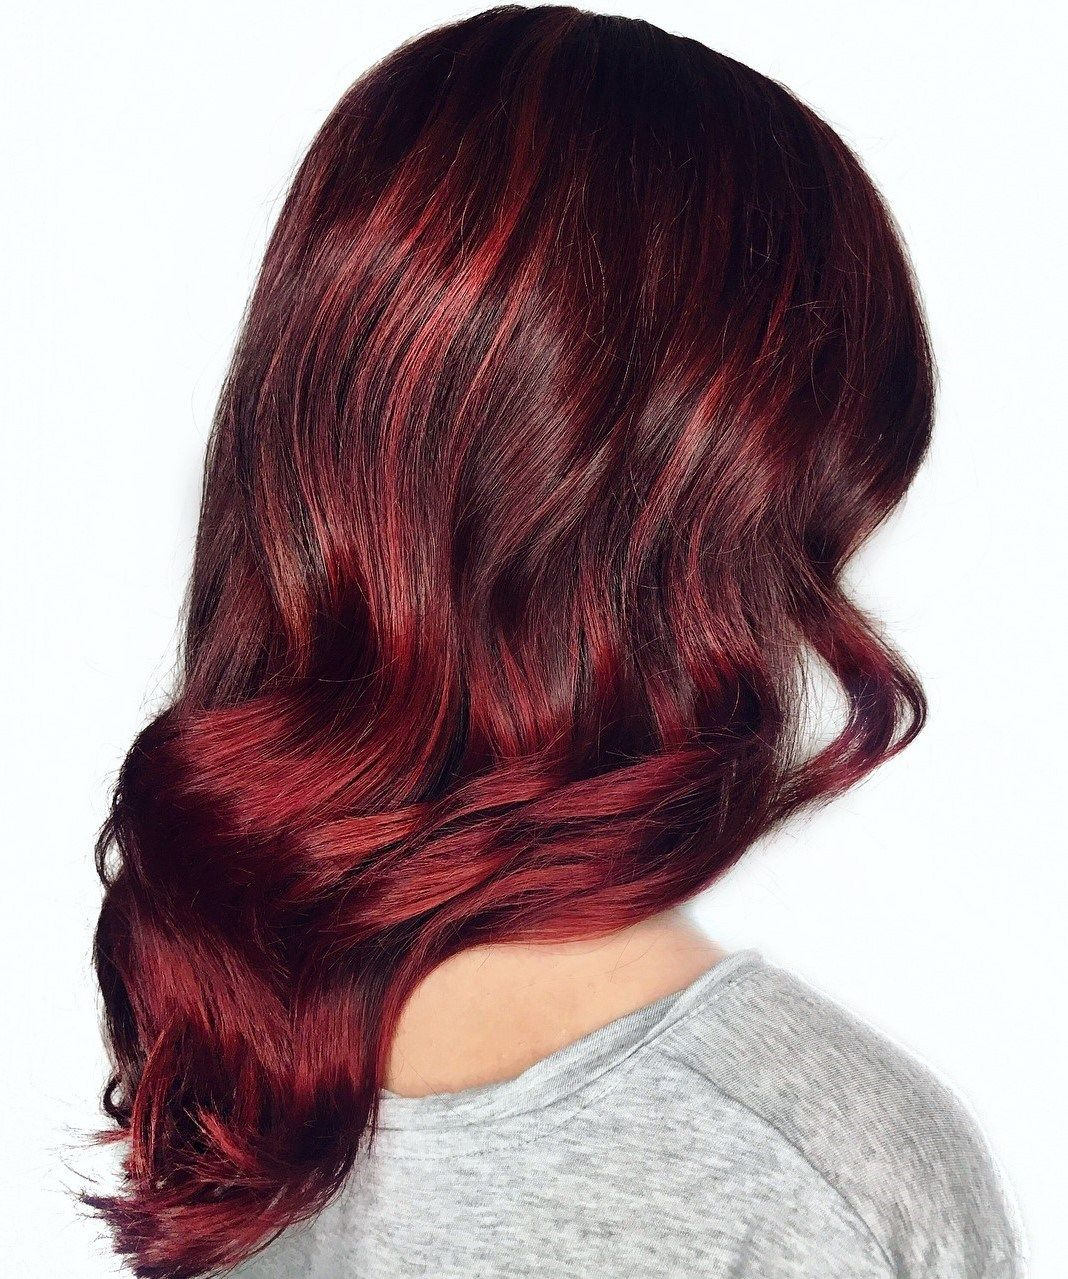 45 Shades Of Burgundy Hair Dark Burgundy Maroon Burgundy With Red Purple And Brown Highlights Burgundy Hair Hair Color Burgundy Red Violet Hair